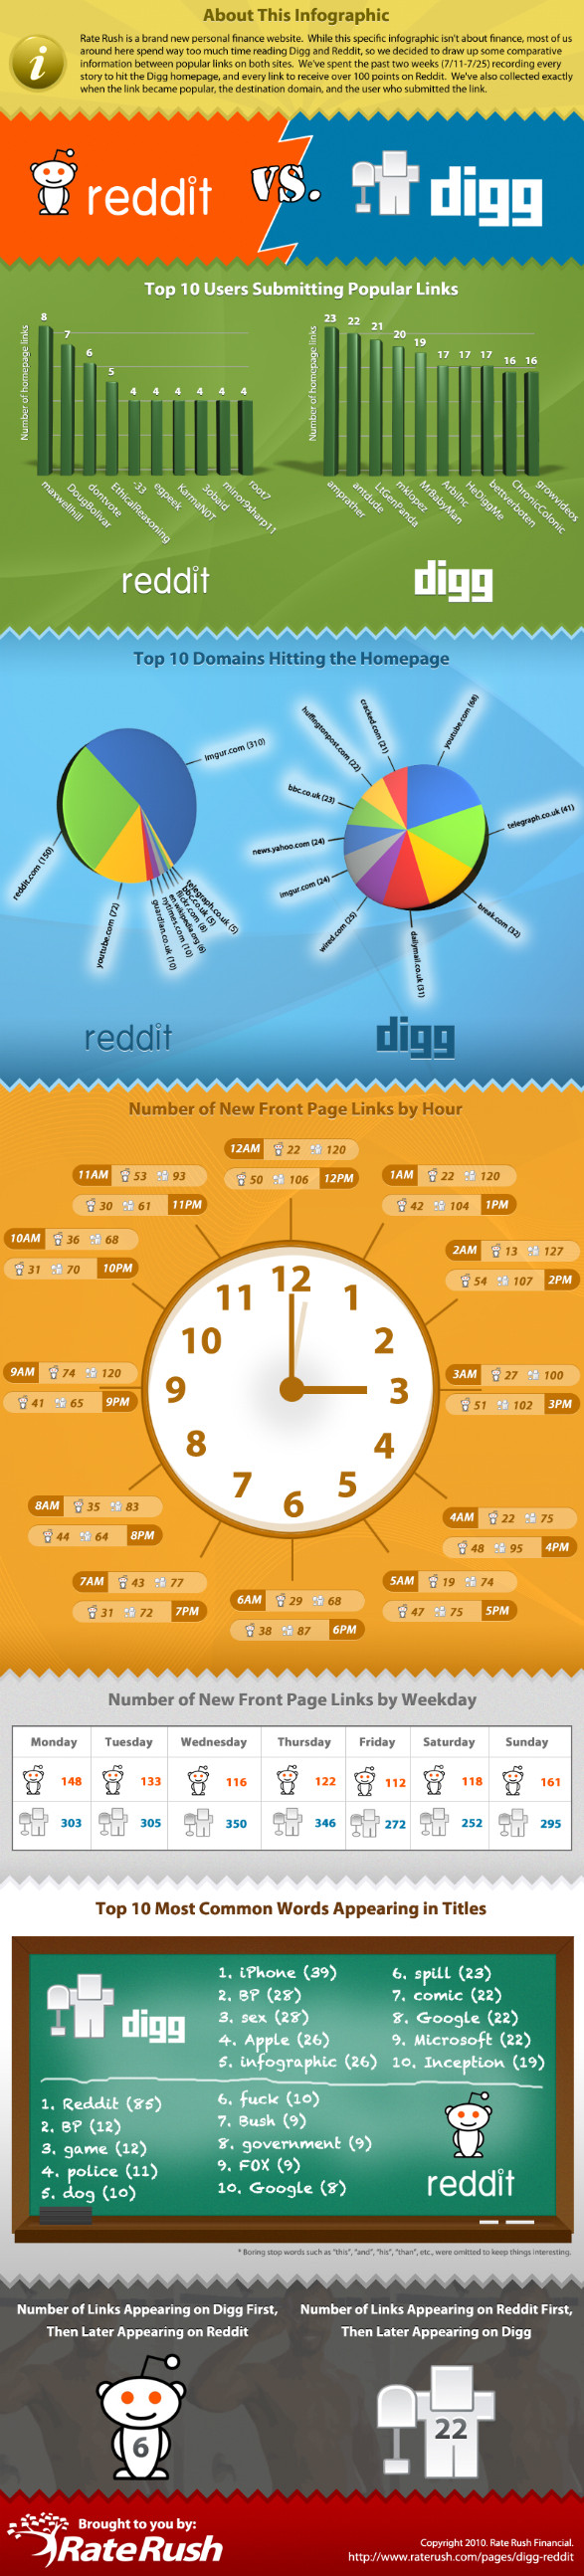 Reddit vs Digg stats